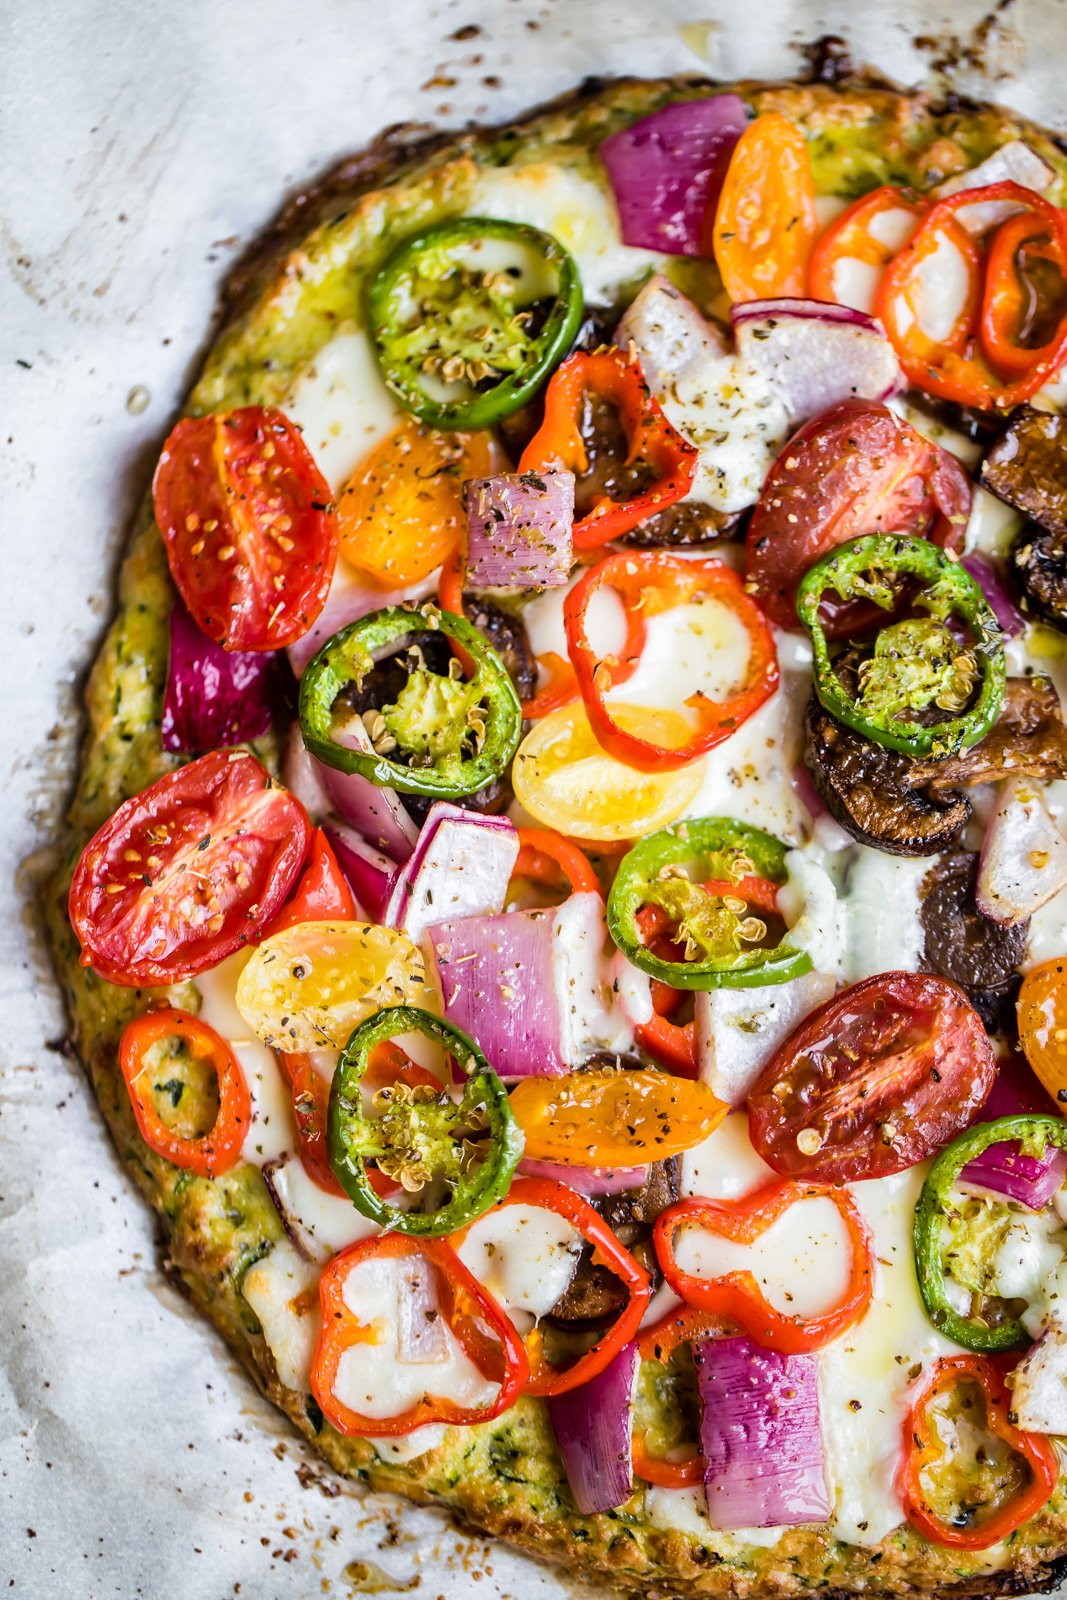 low carb zucchini pizza crust topped with cheese and veggies